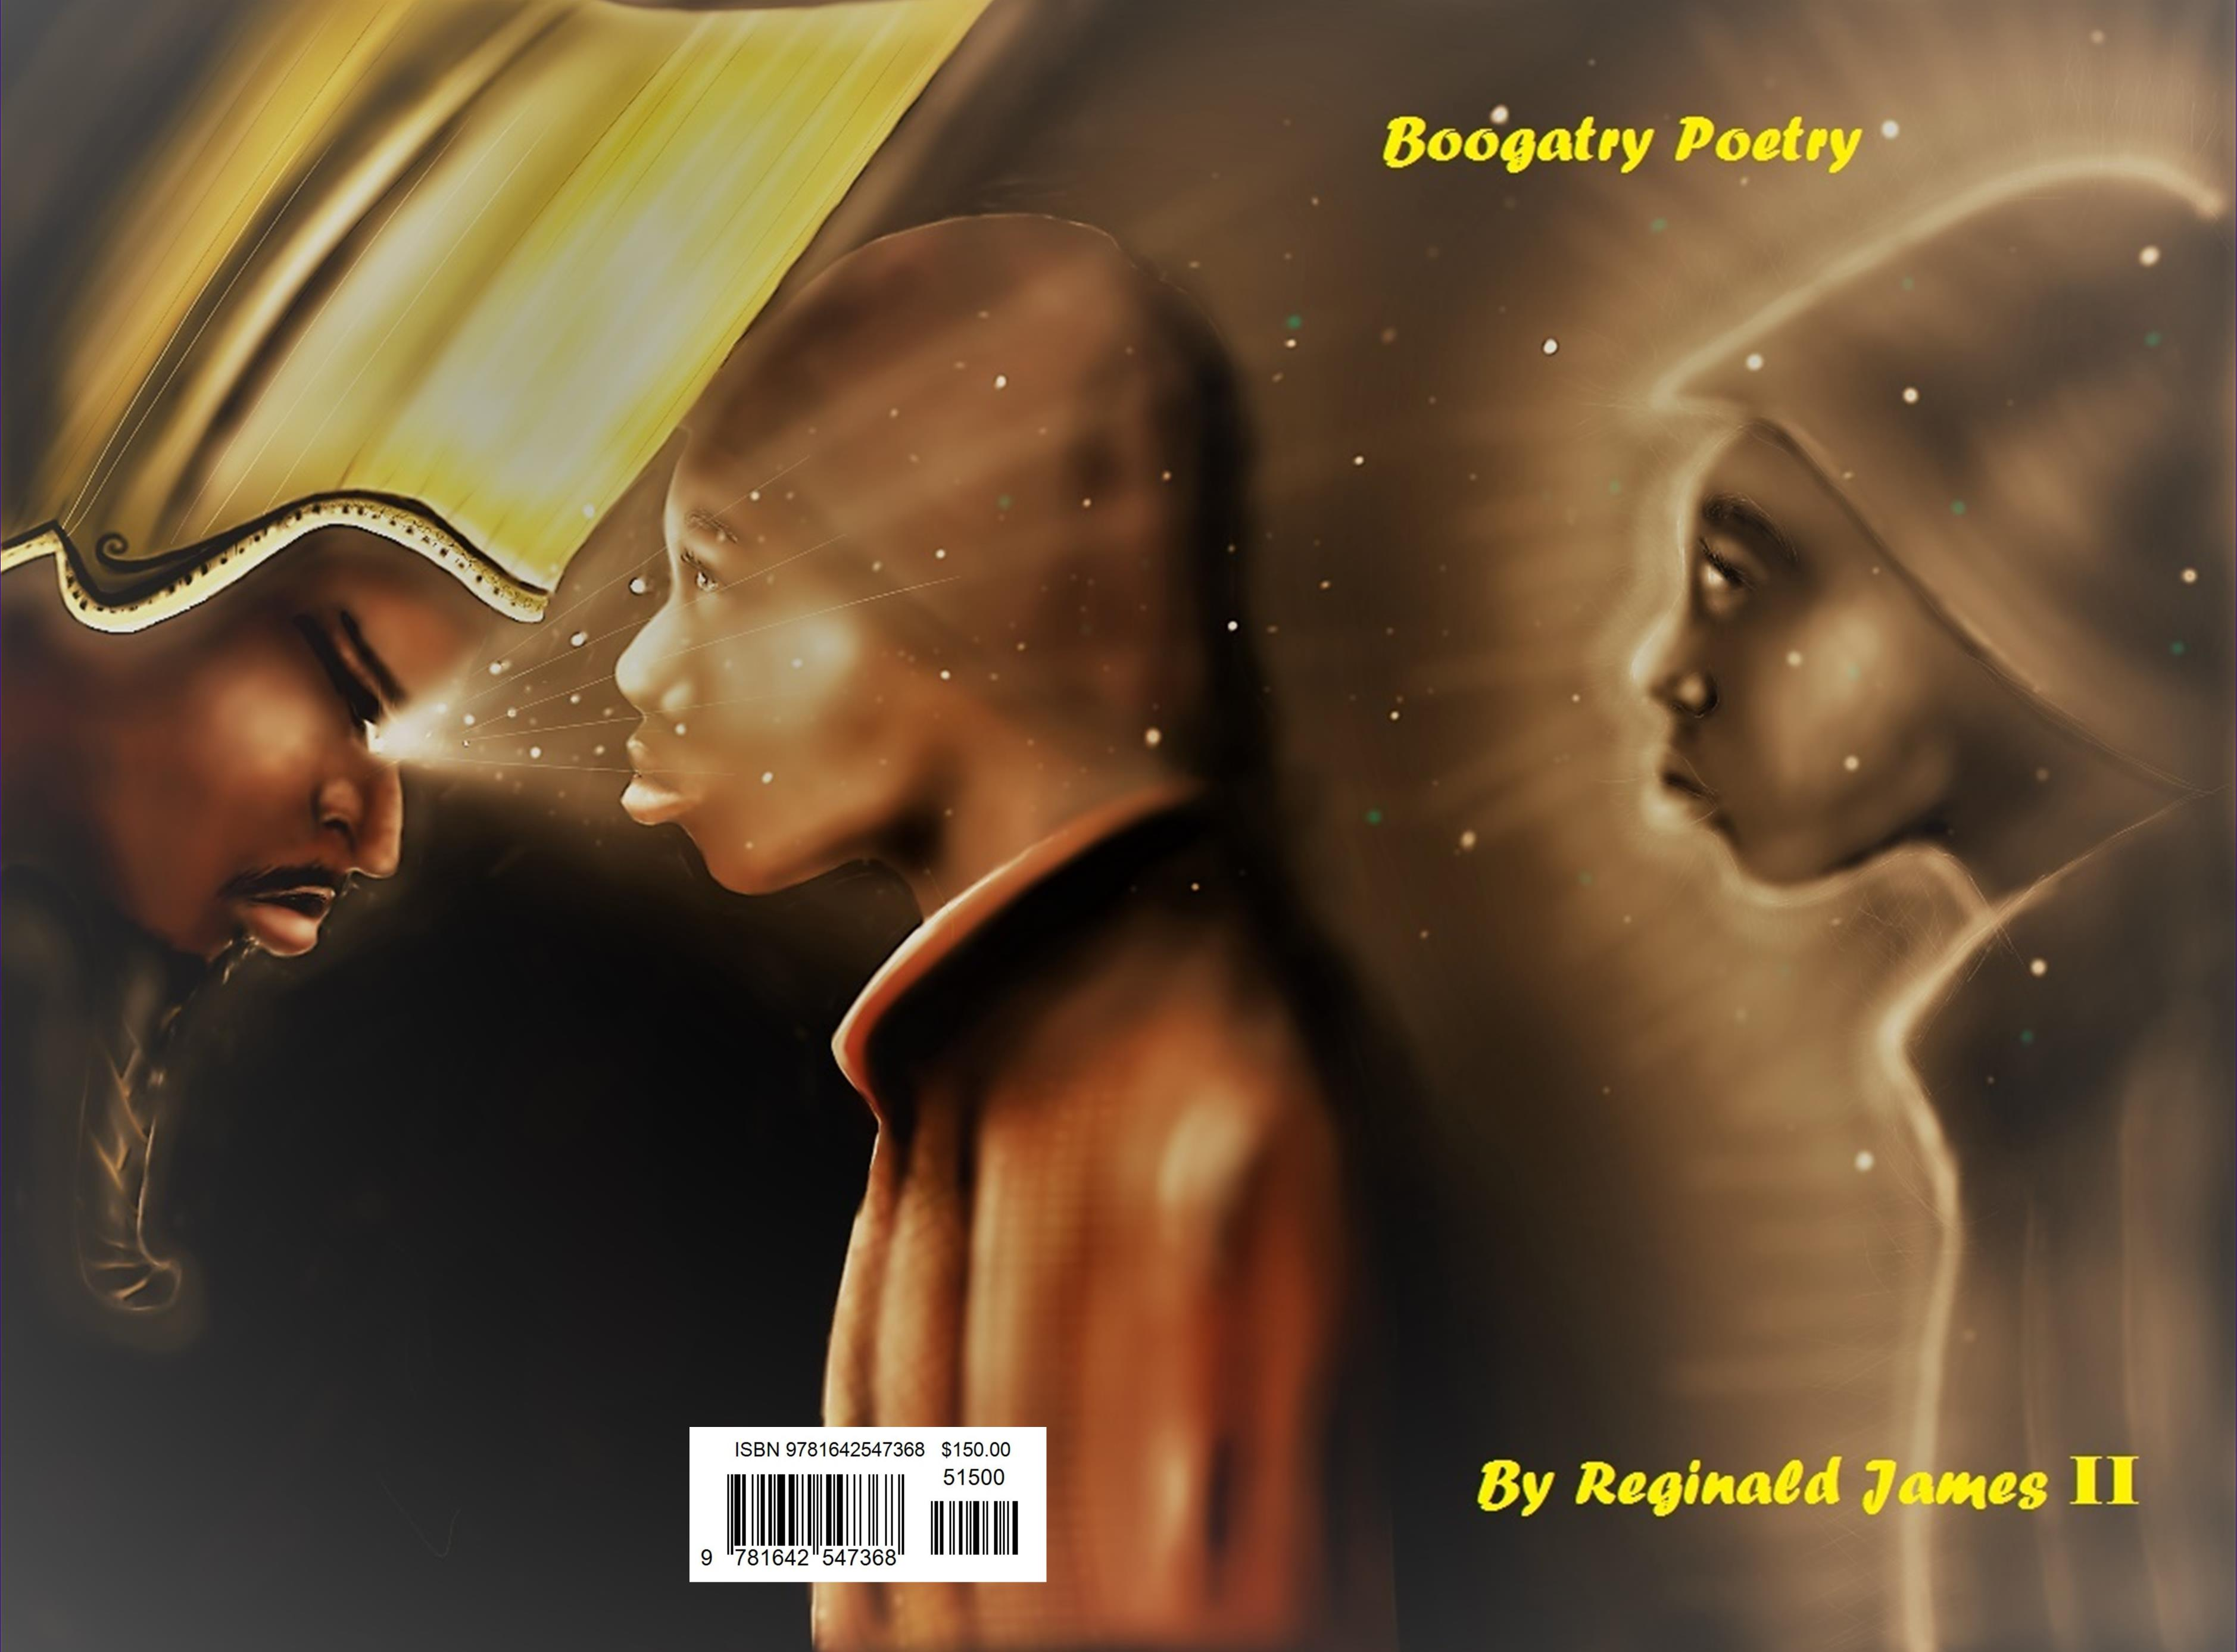 Boogatry poetry cover image